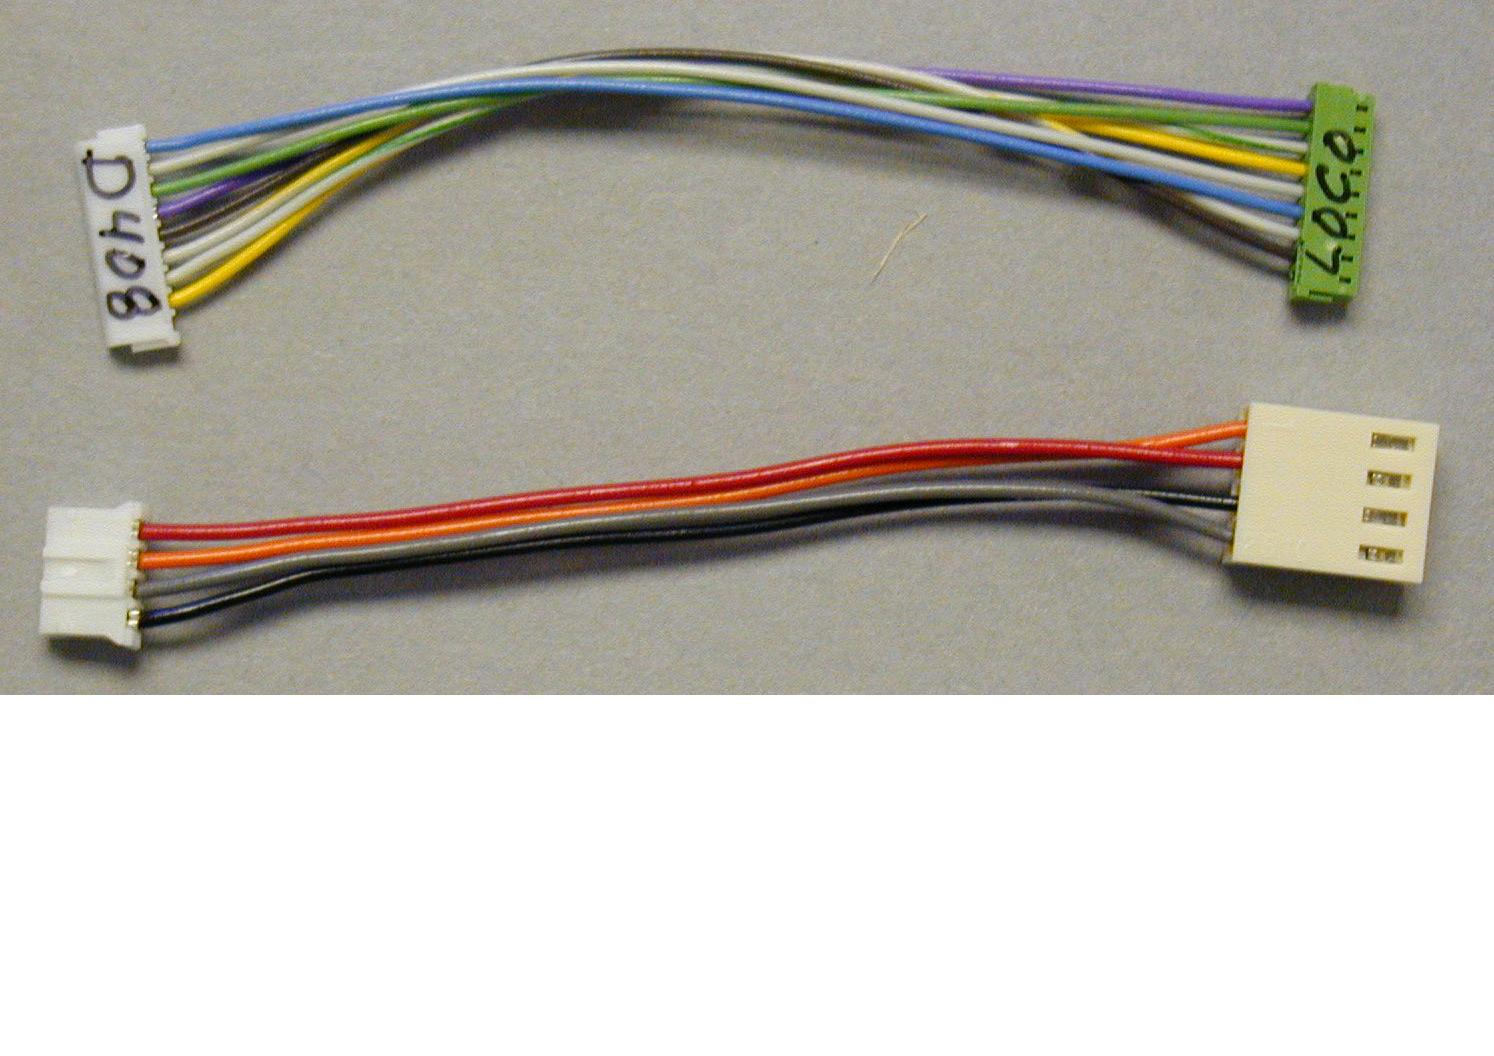 atlas harness nce dcc hobby supply, dcc, digitrax, tcs, nce, soundtraxx, qsi Decoder Wire IDI 500 at soozxer.org